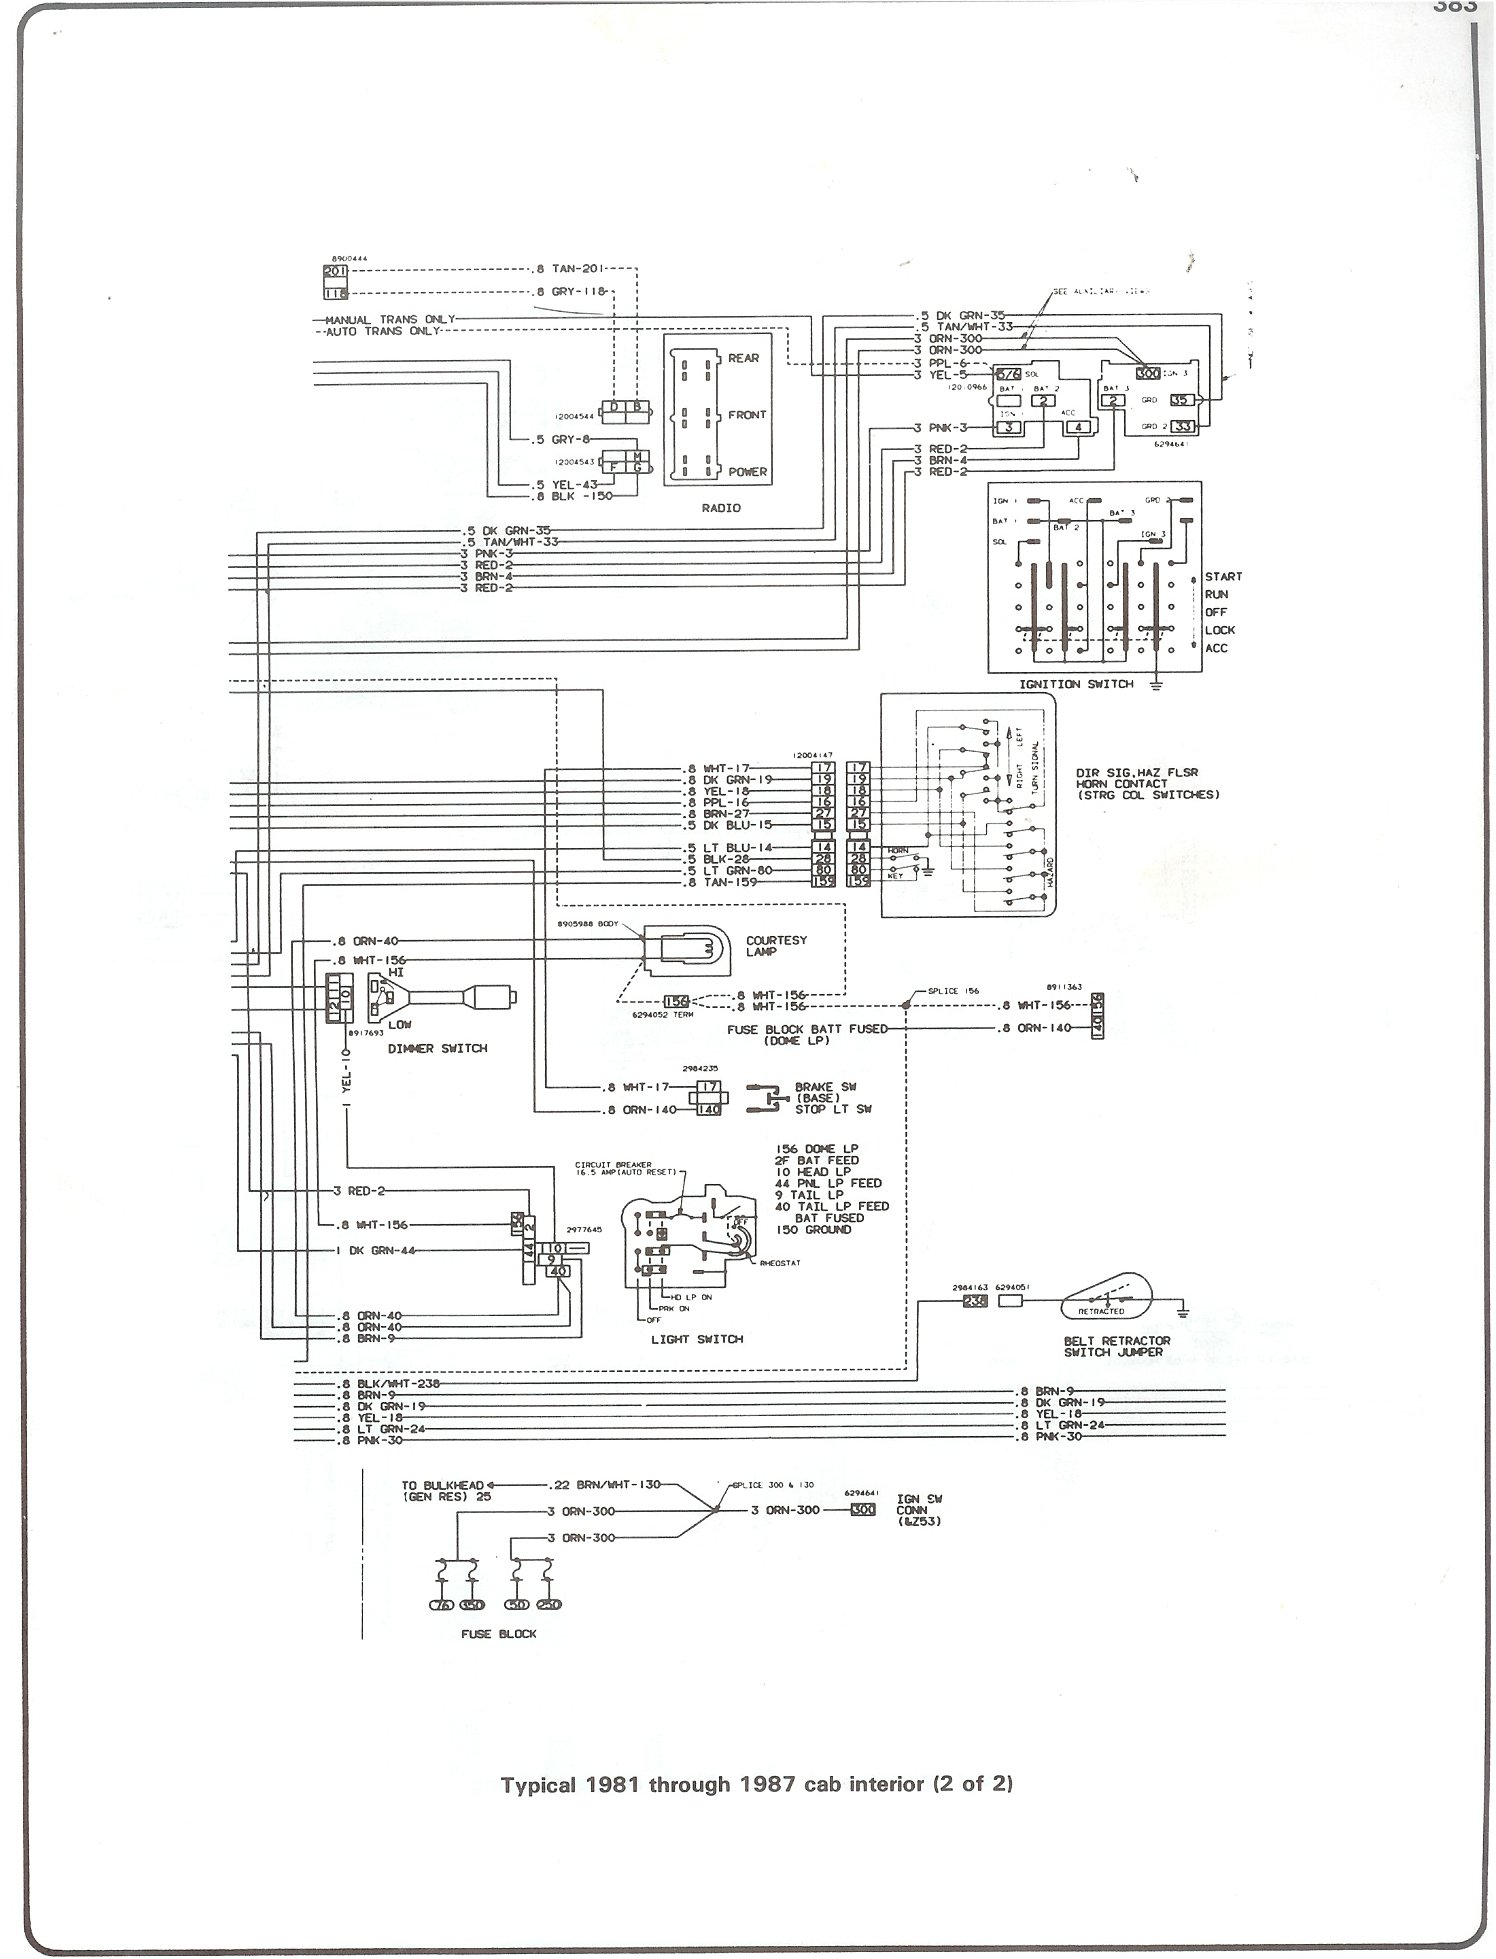 brake light switch wiring diagram blazer forum chevy blazer 81 87 cab interior page 2